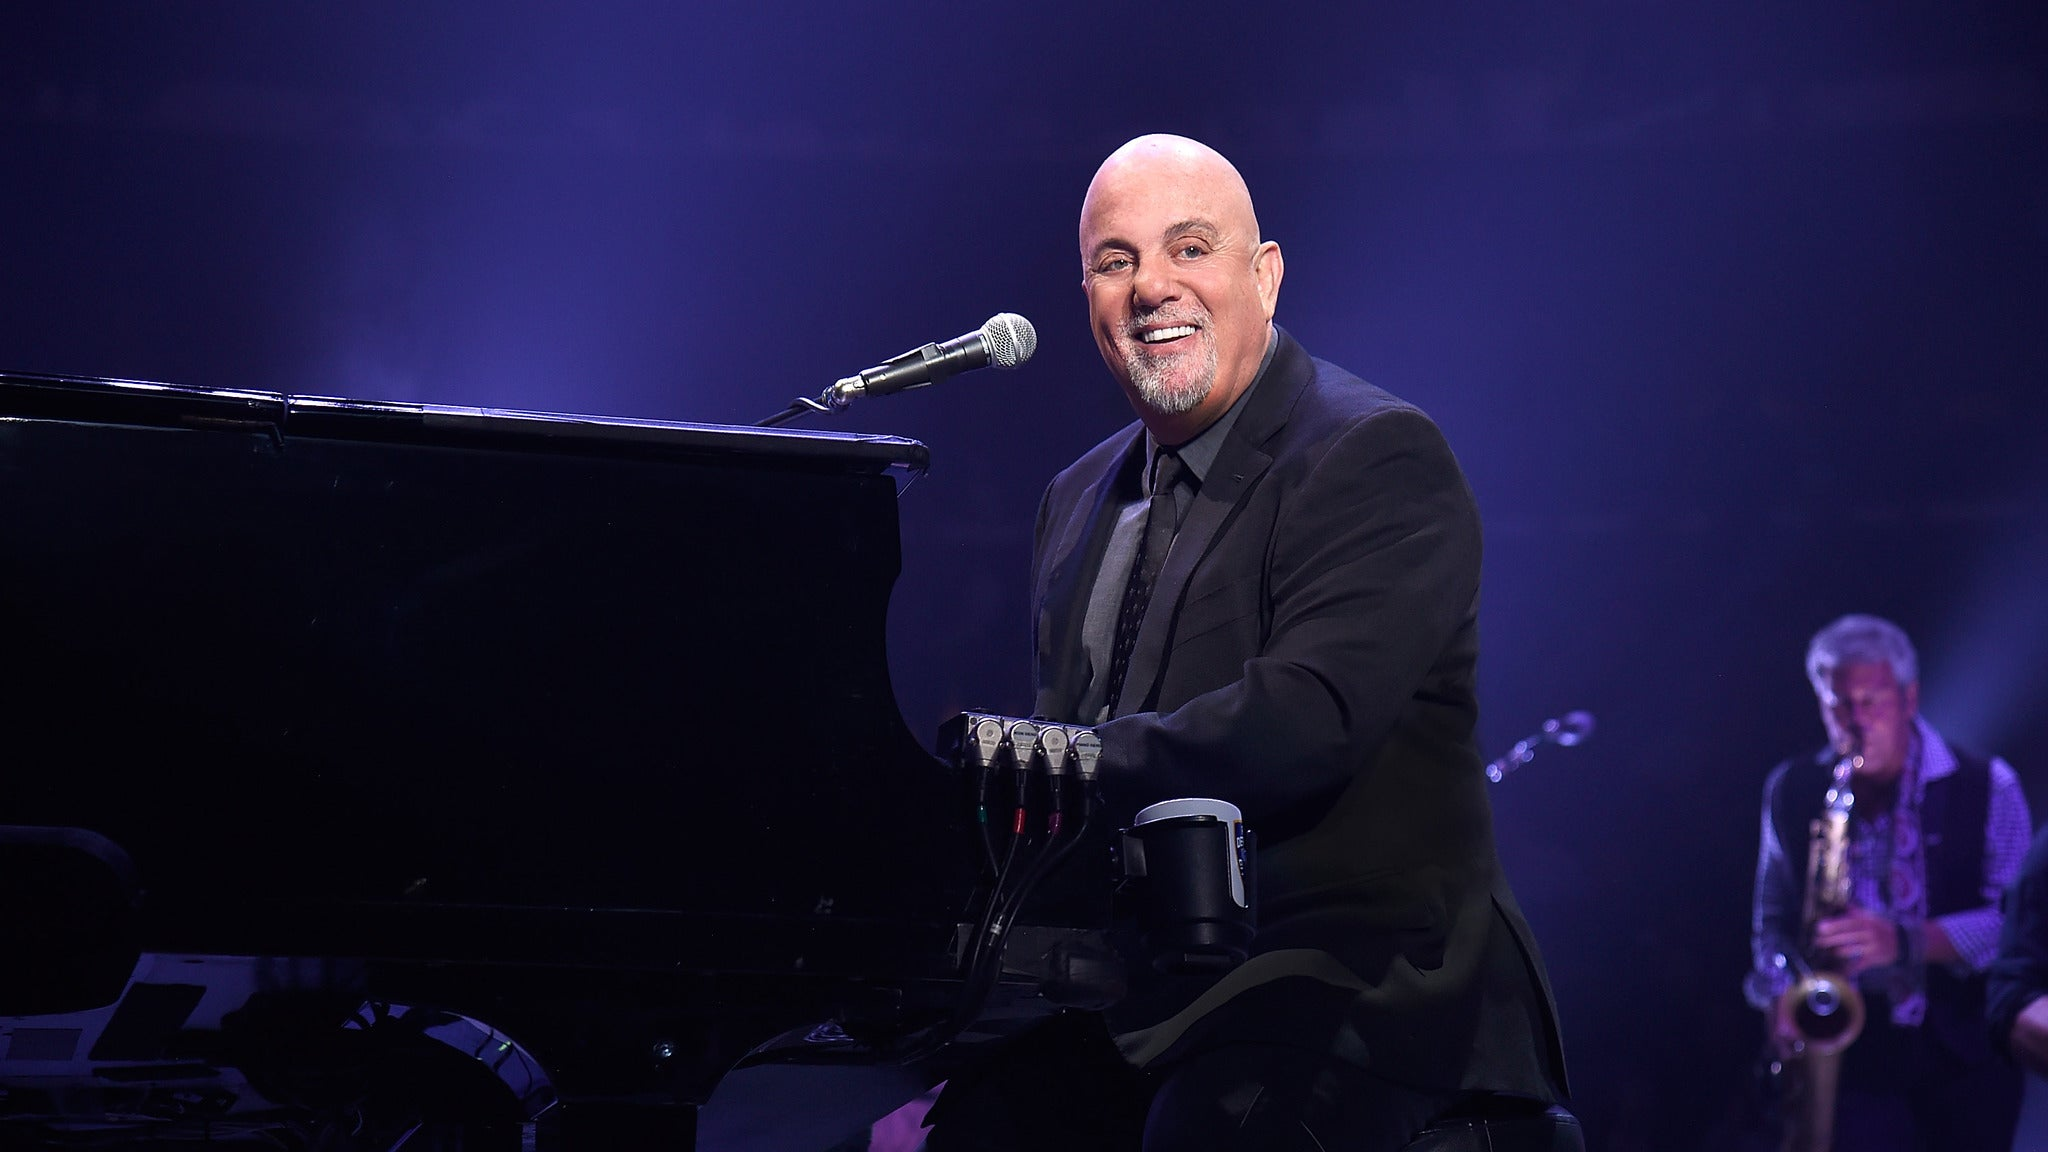 Billy Joel at Citizens Bank Park